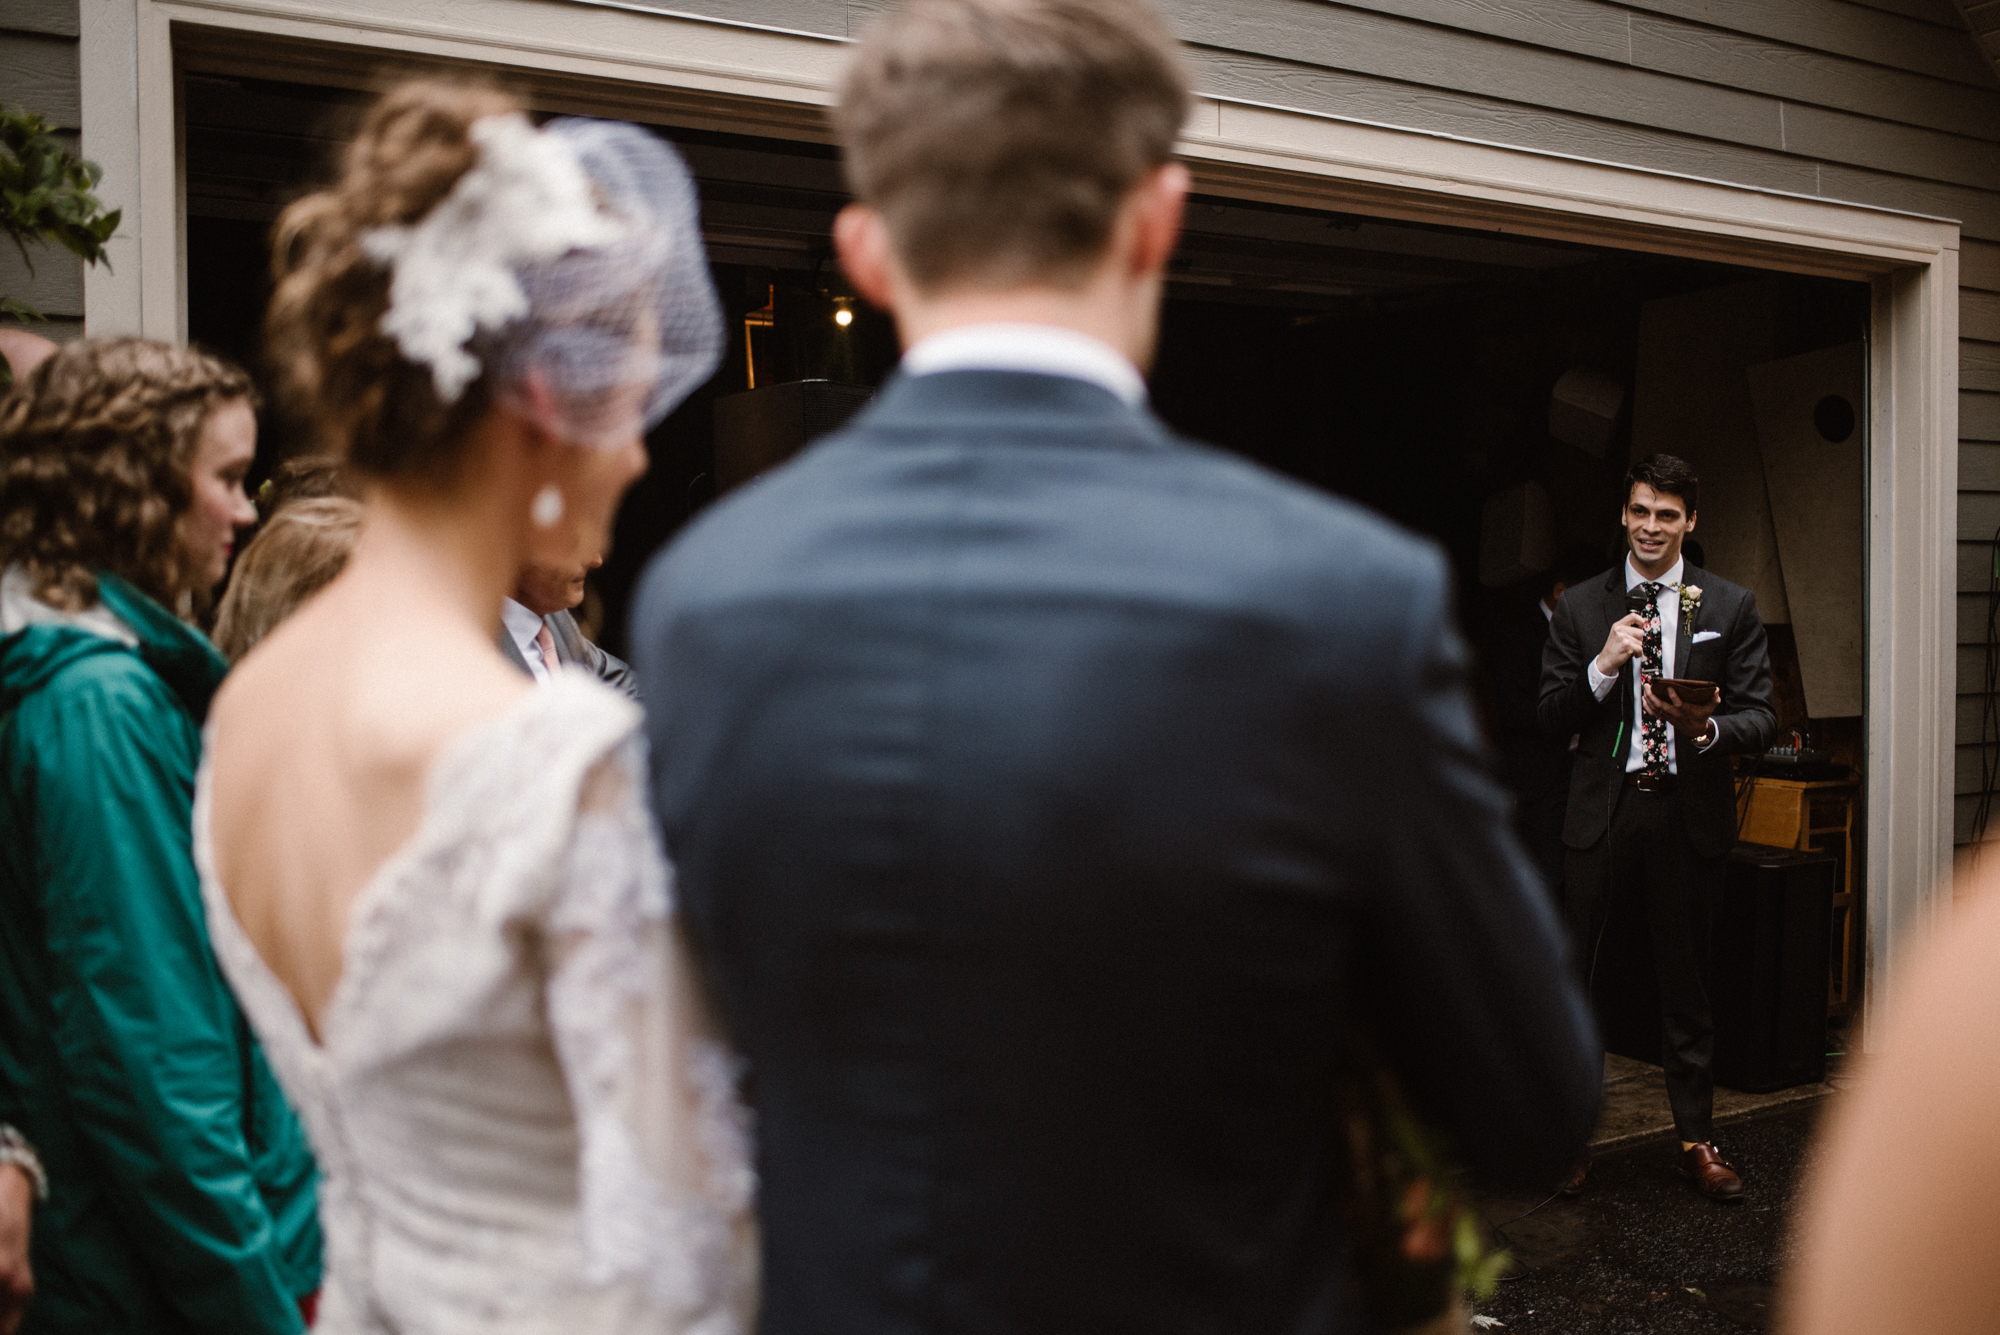 Mairi and Jude - Rainy Backyard Wedding - Intimate Wedding - Fun Reception Photos - Chicago Wedding Photographer - Catholic Wedding - White Sails Creative - Virginia Backyard Wedding Photographer_50.jpg